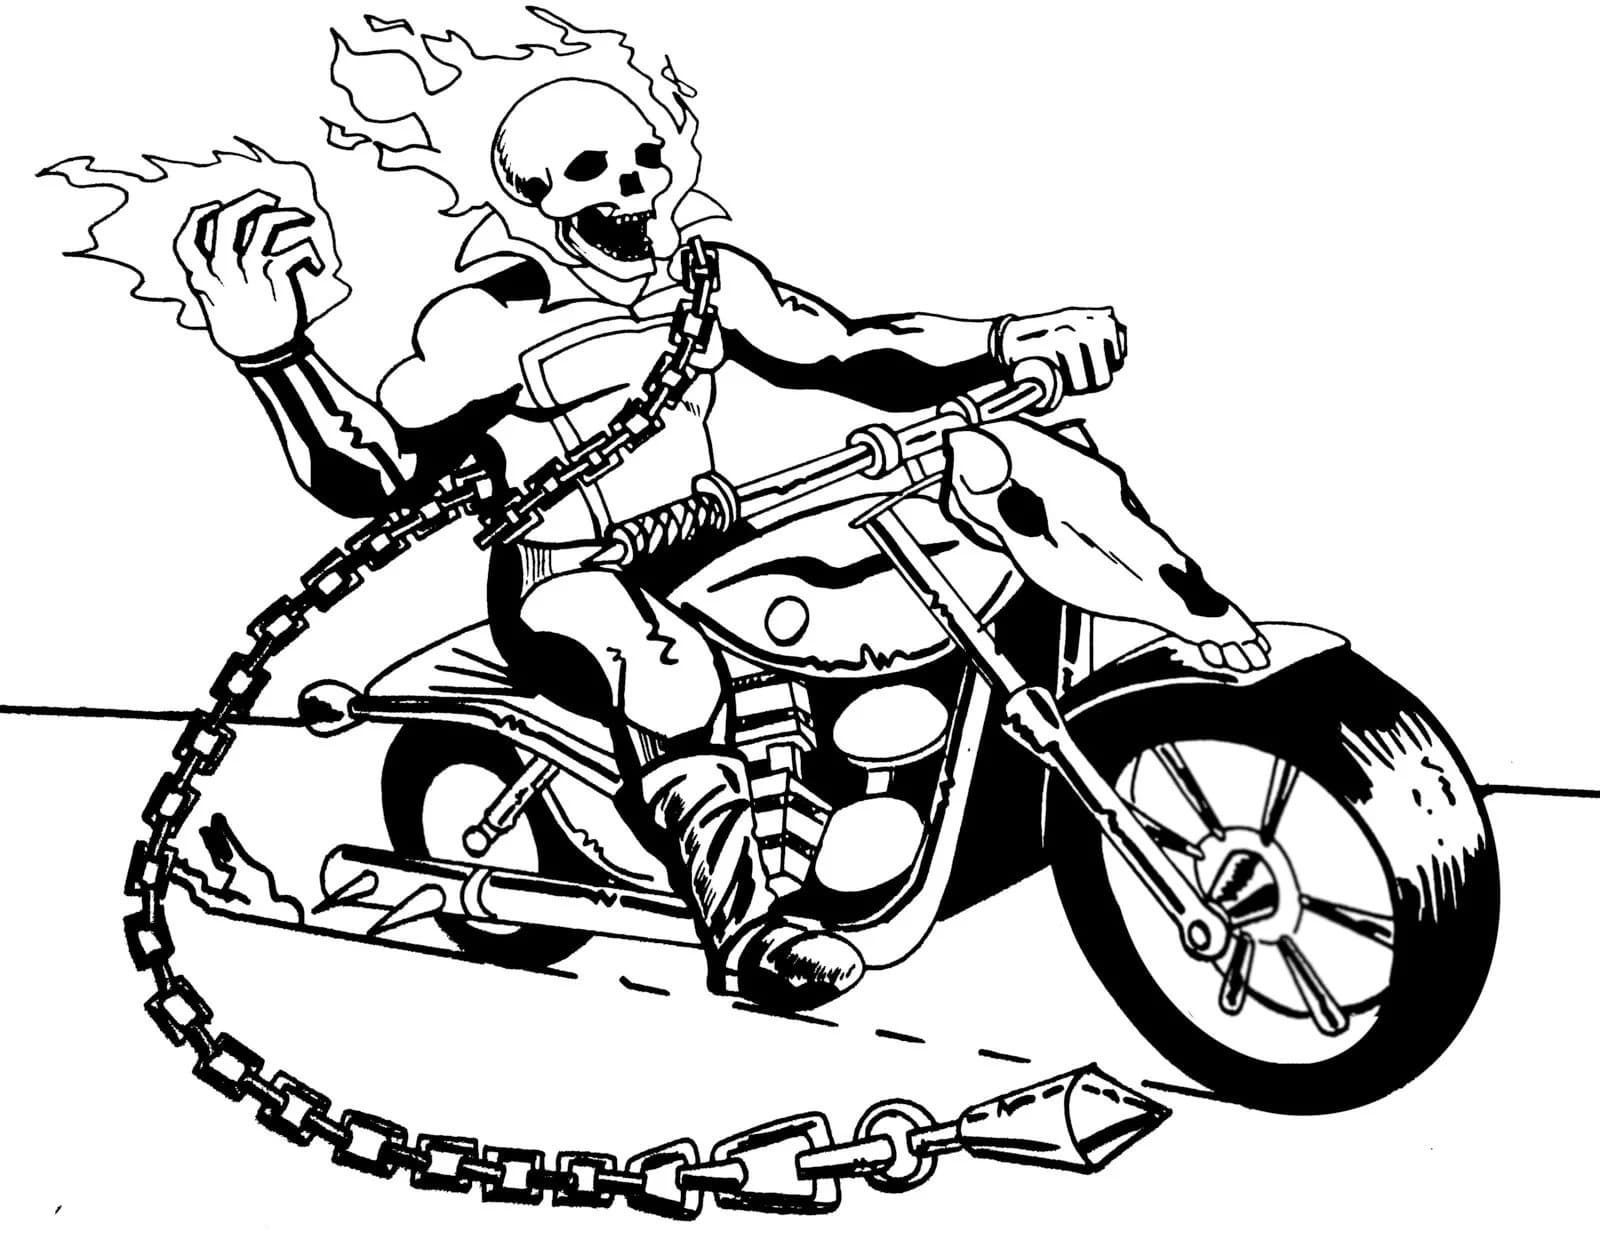 coloring pictures of motorcycles coloring pages motorcycle coloring pages free and printable of motorcycles coloring pictures